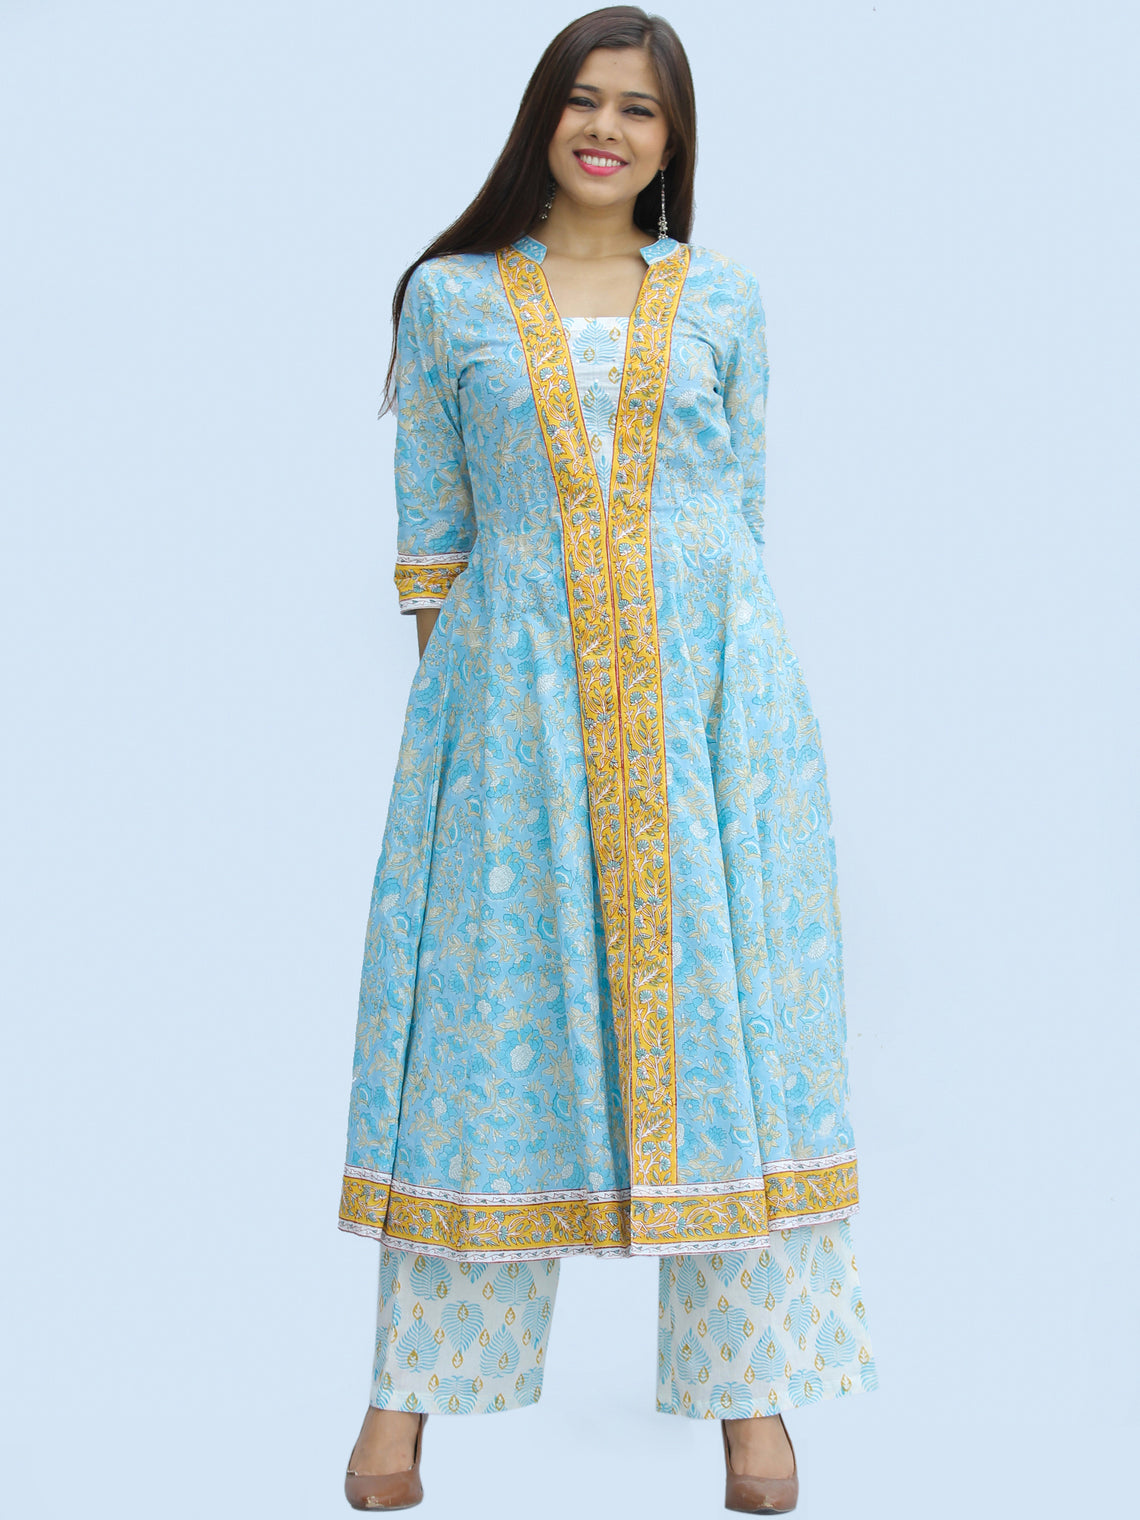 Rangrez Hena - Set of Anarkali Kurta Palazzo & Dupatta - KS55A2307D